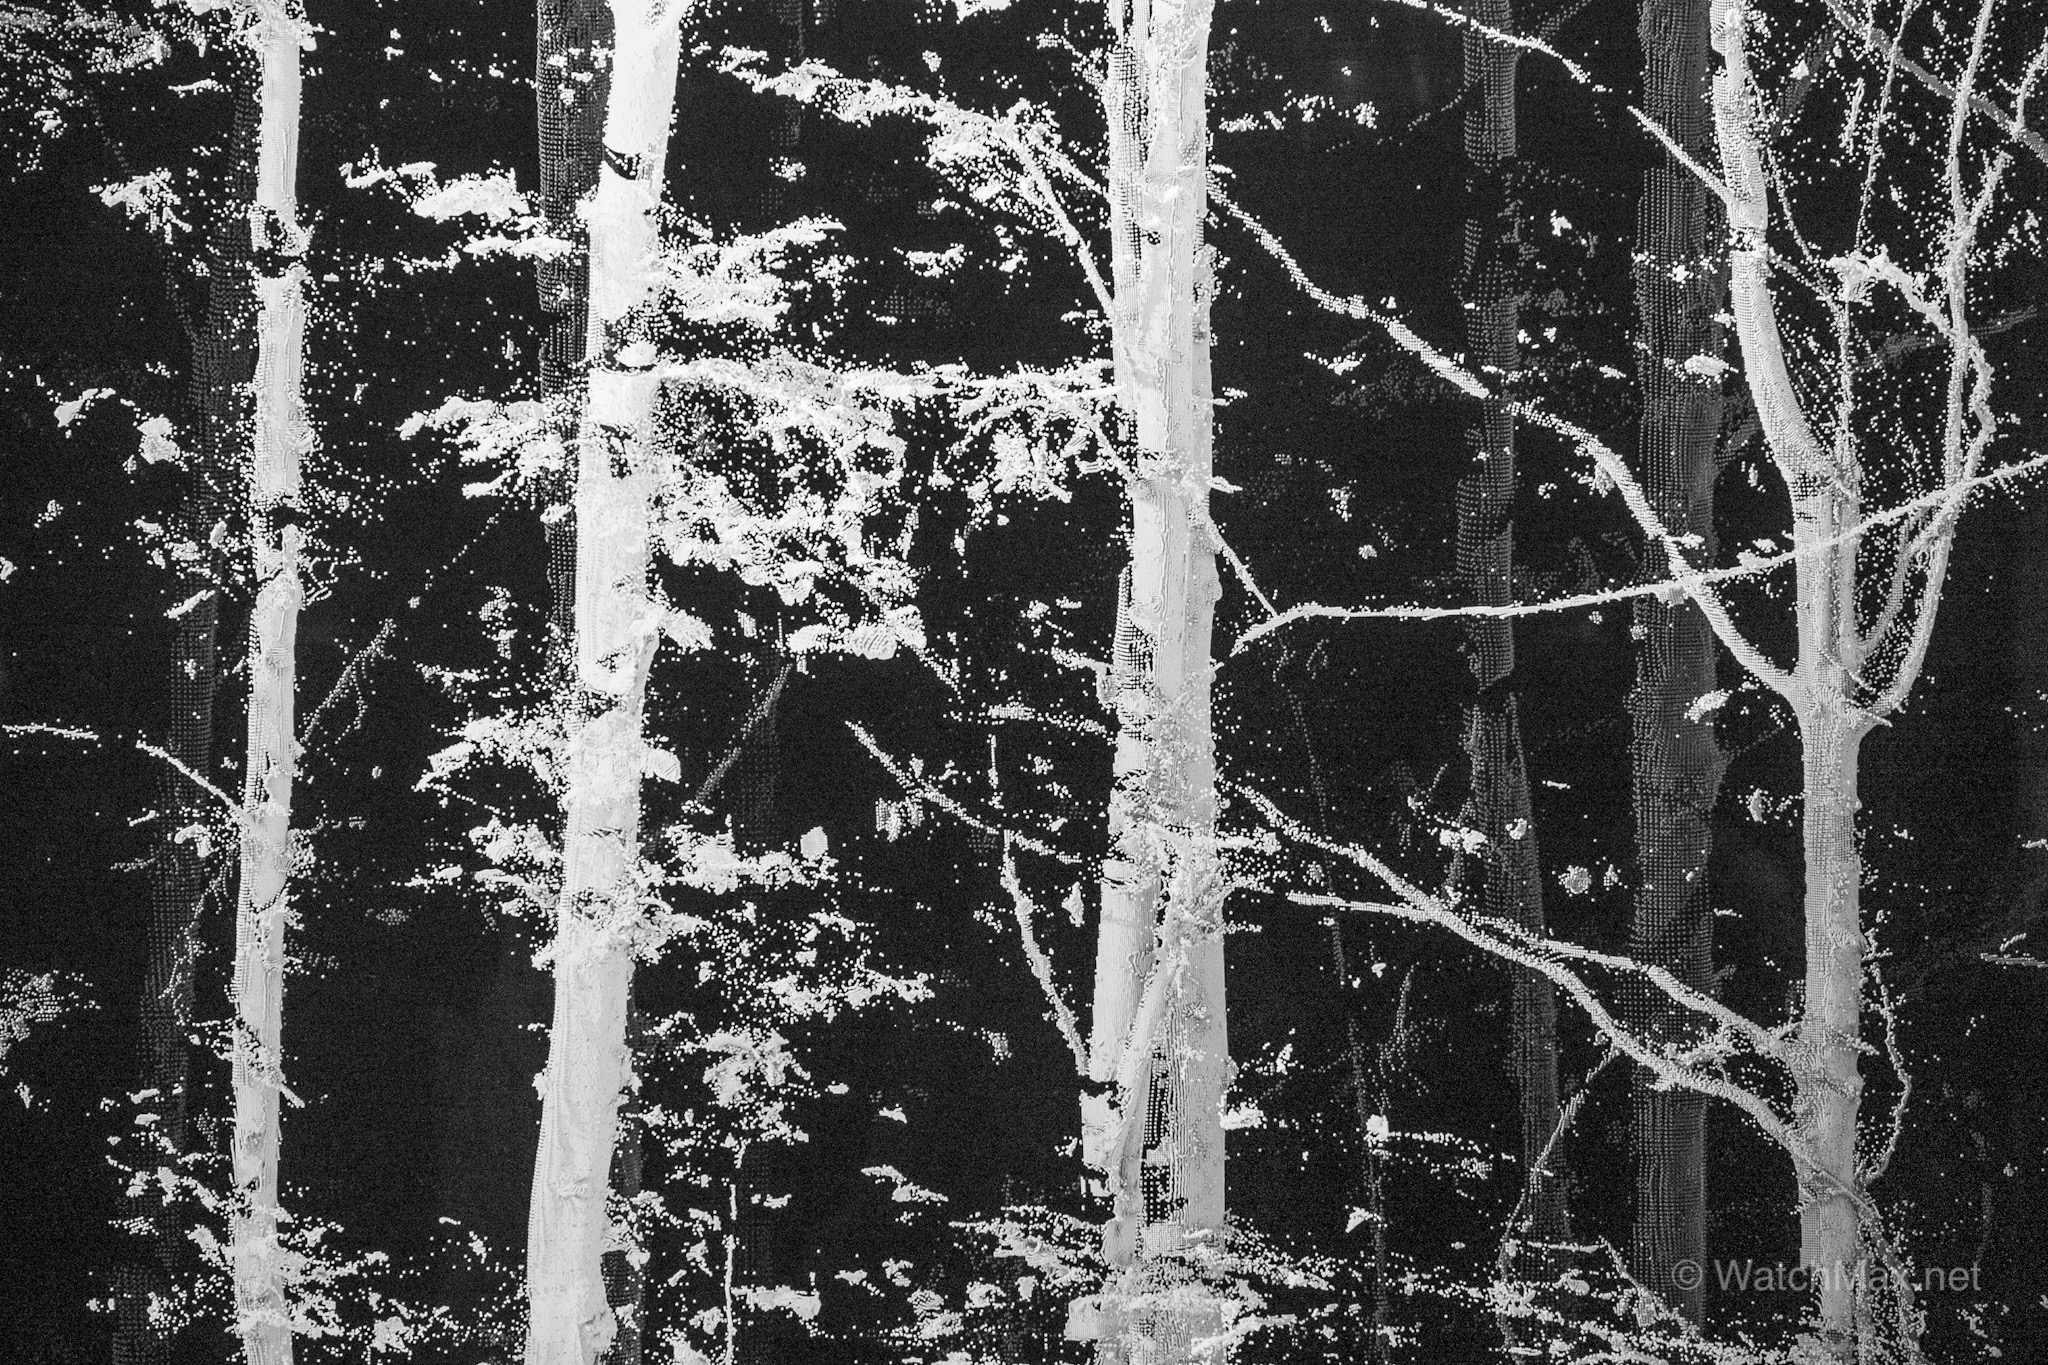 Snapshot of Quayola's video, piercing into the heart of the Vallée de Joux's forests